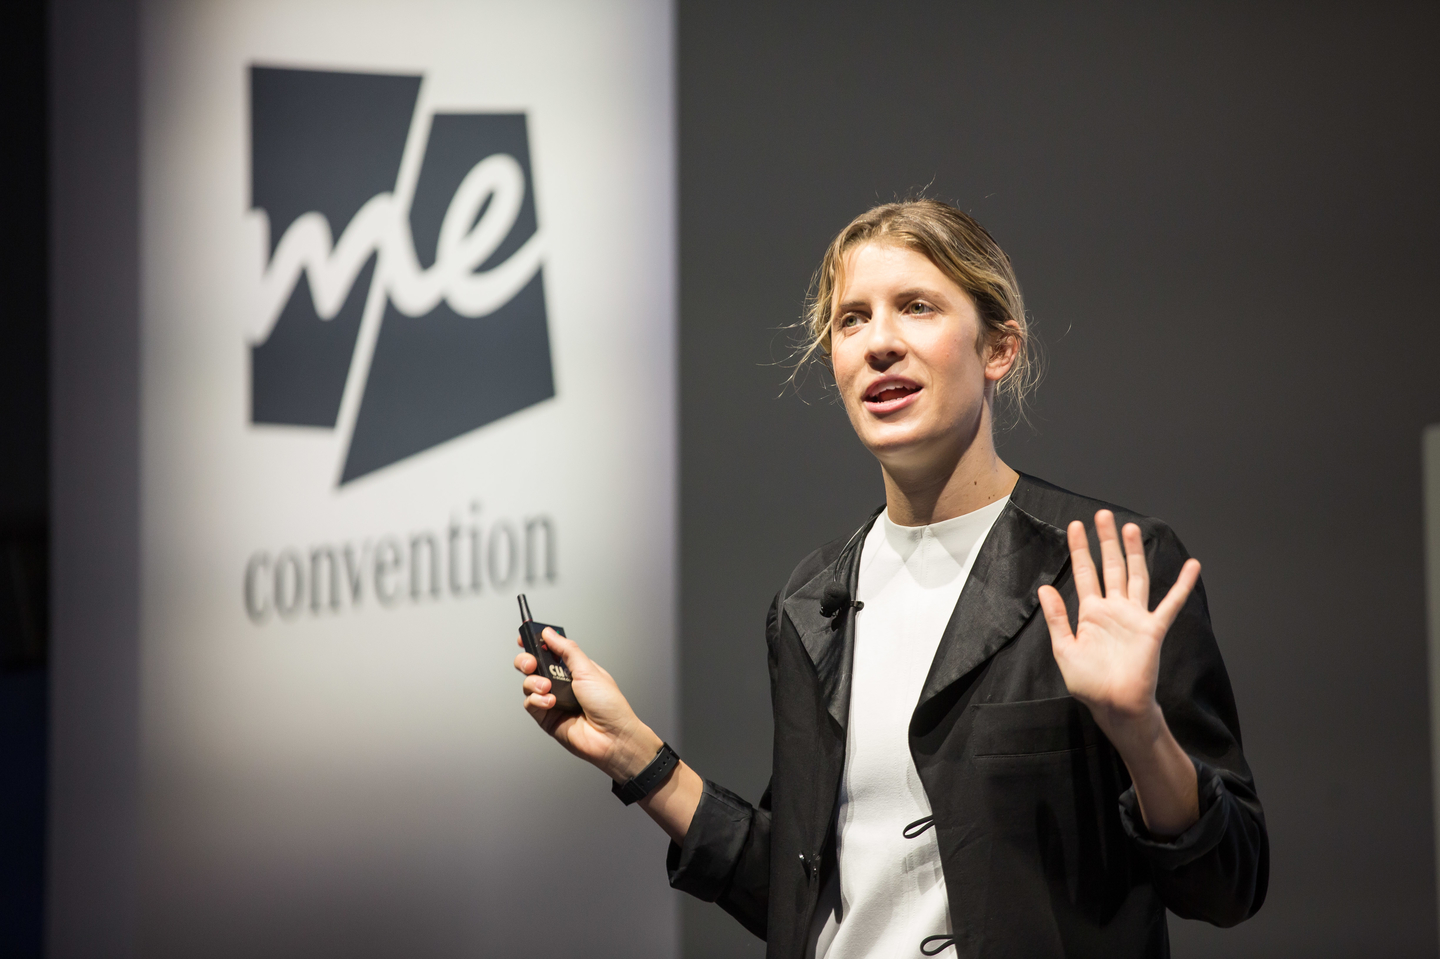 Musician and author Claire Evans gives a solo talk. Photo by Markus Nass/Daimler AG